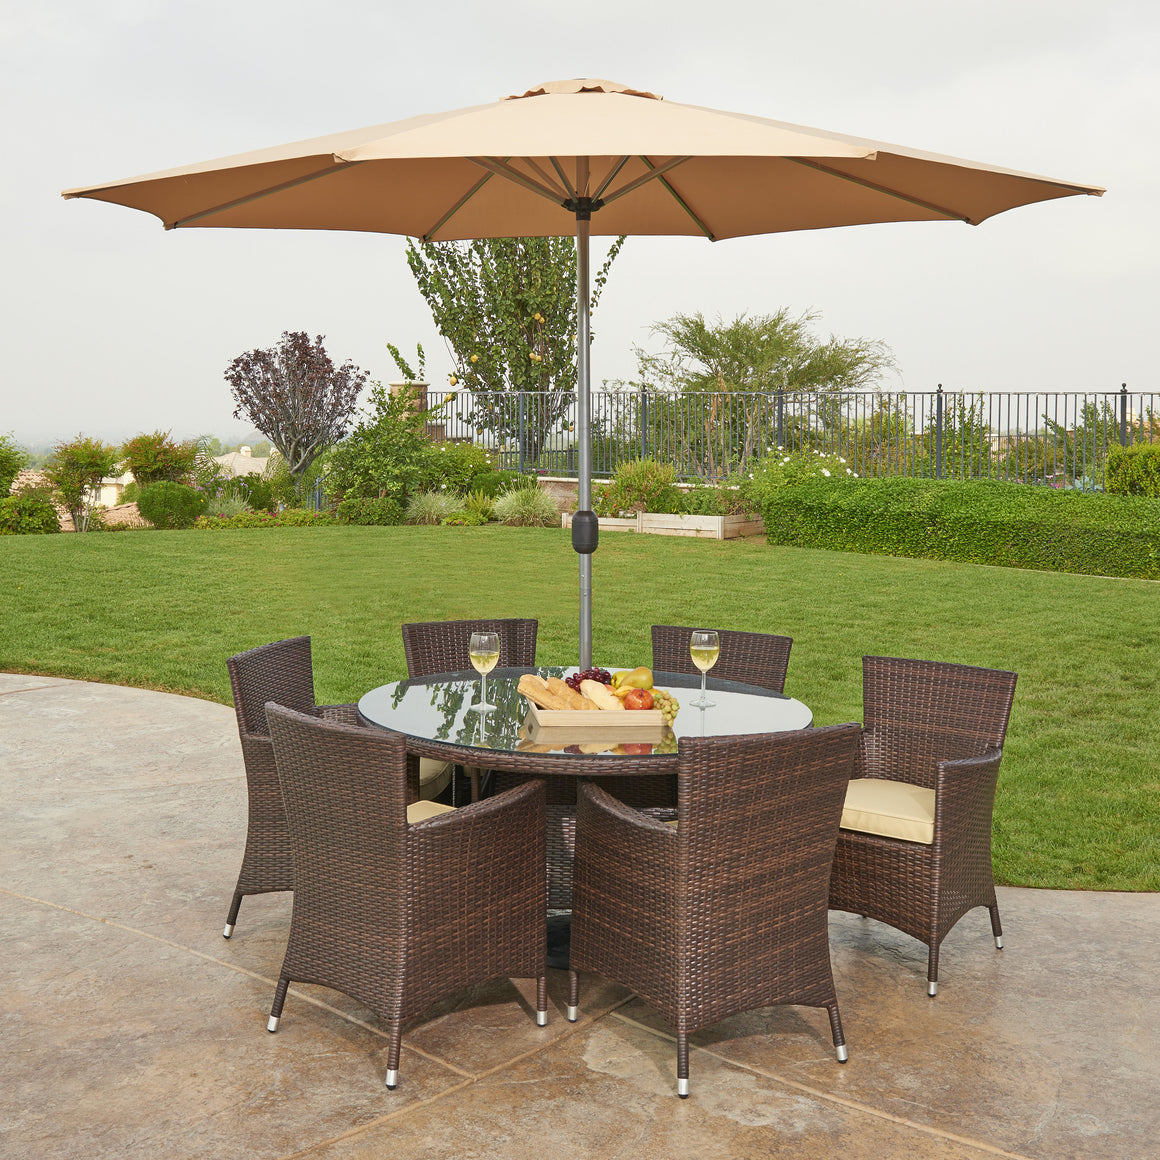 W Unlimited St. Maria Collection 8PC Dark Brown Wicker Outdoor Garden Patio Dinning Furniture Beige Cushion Set w/ Umbrella + Pillow , W Unlimited- grayburd